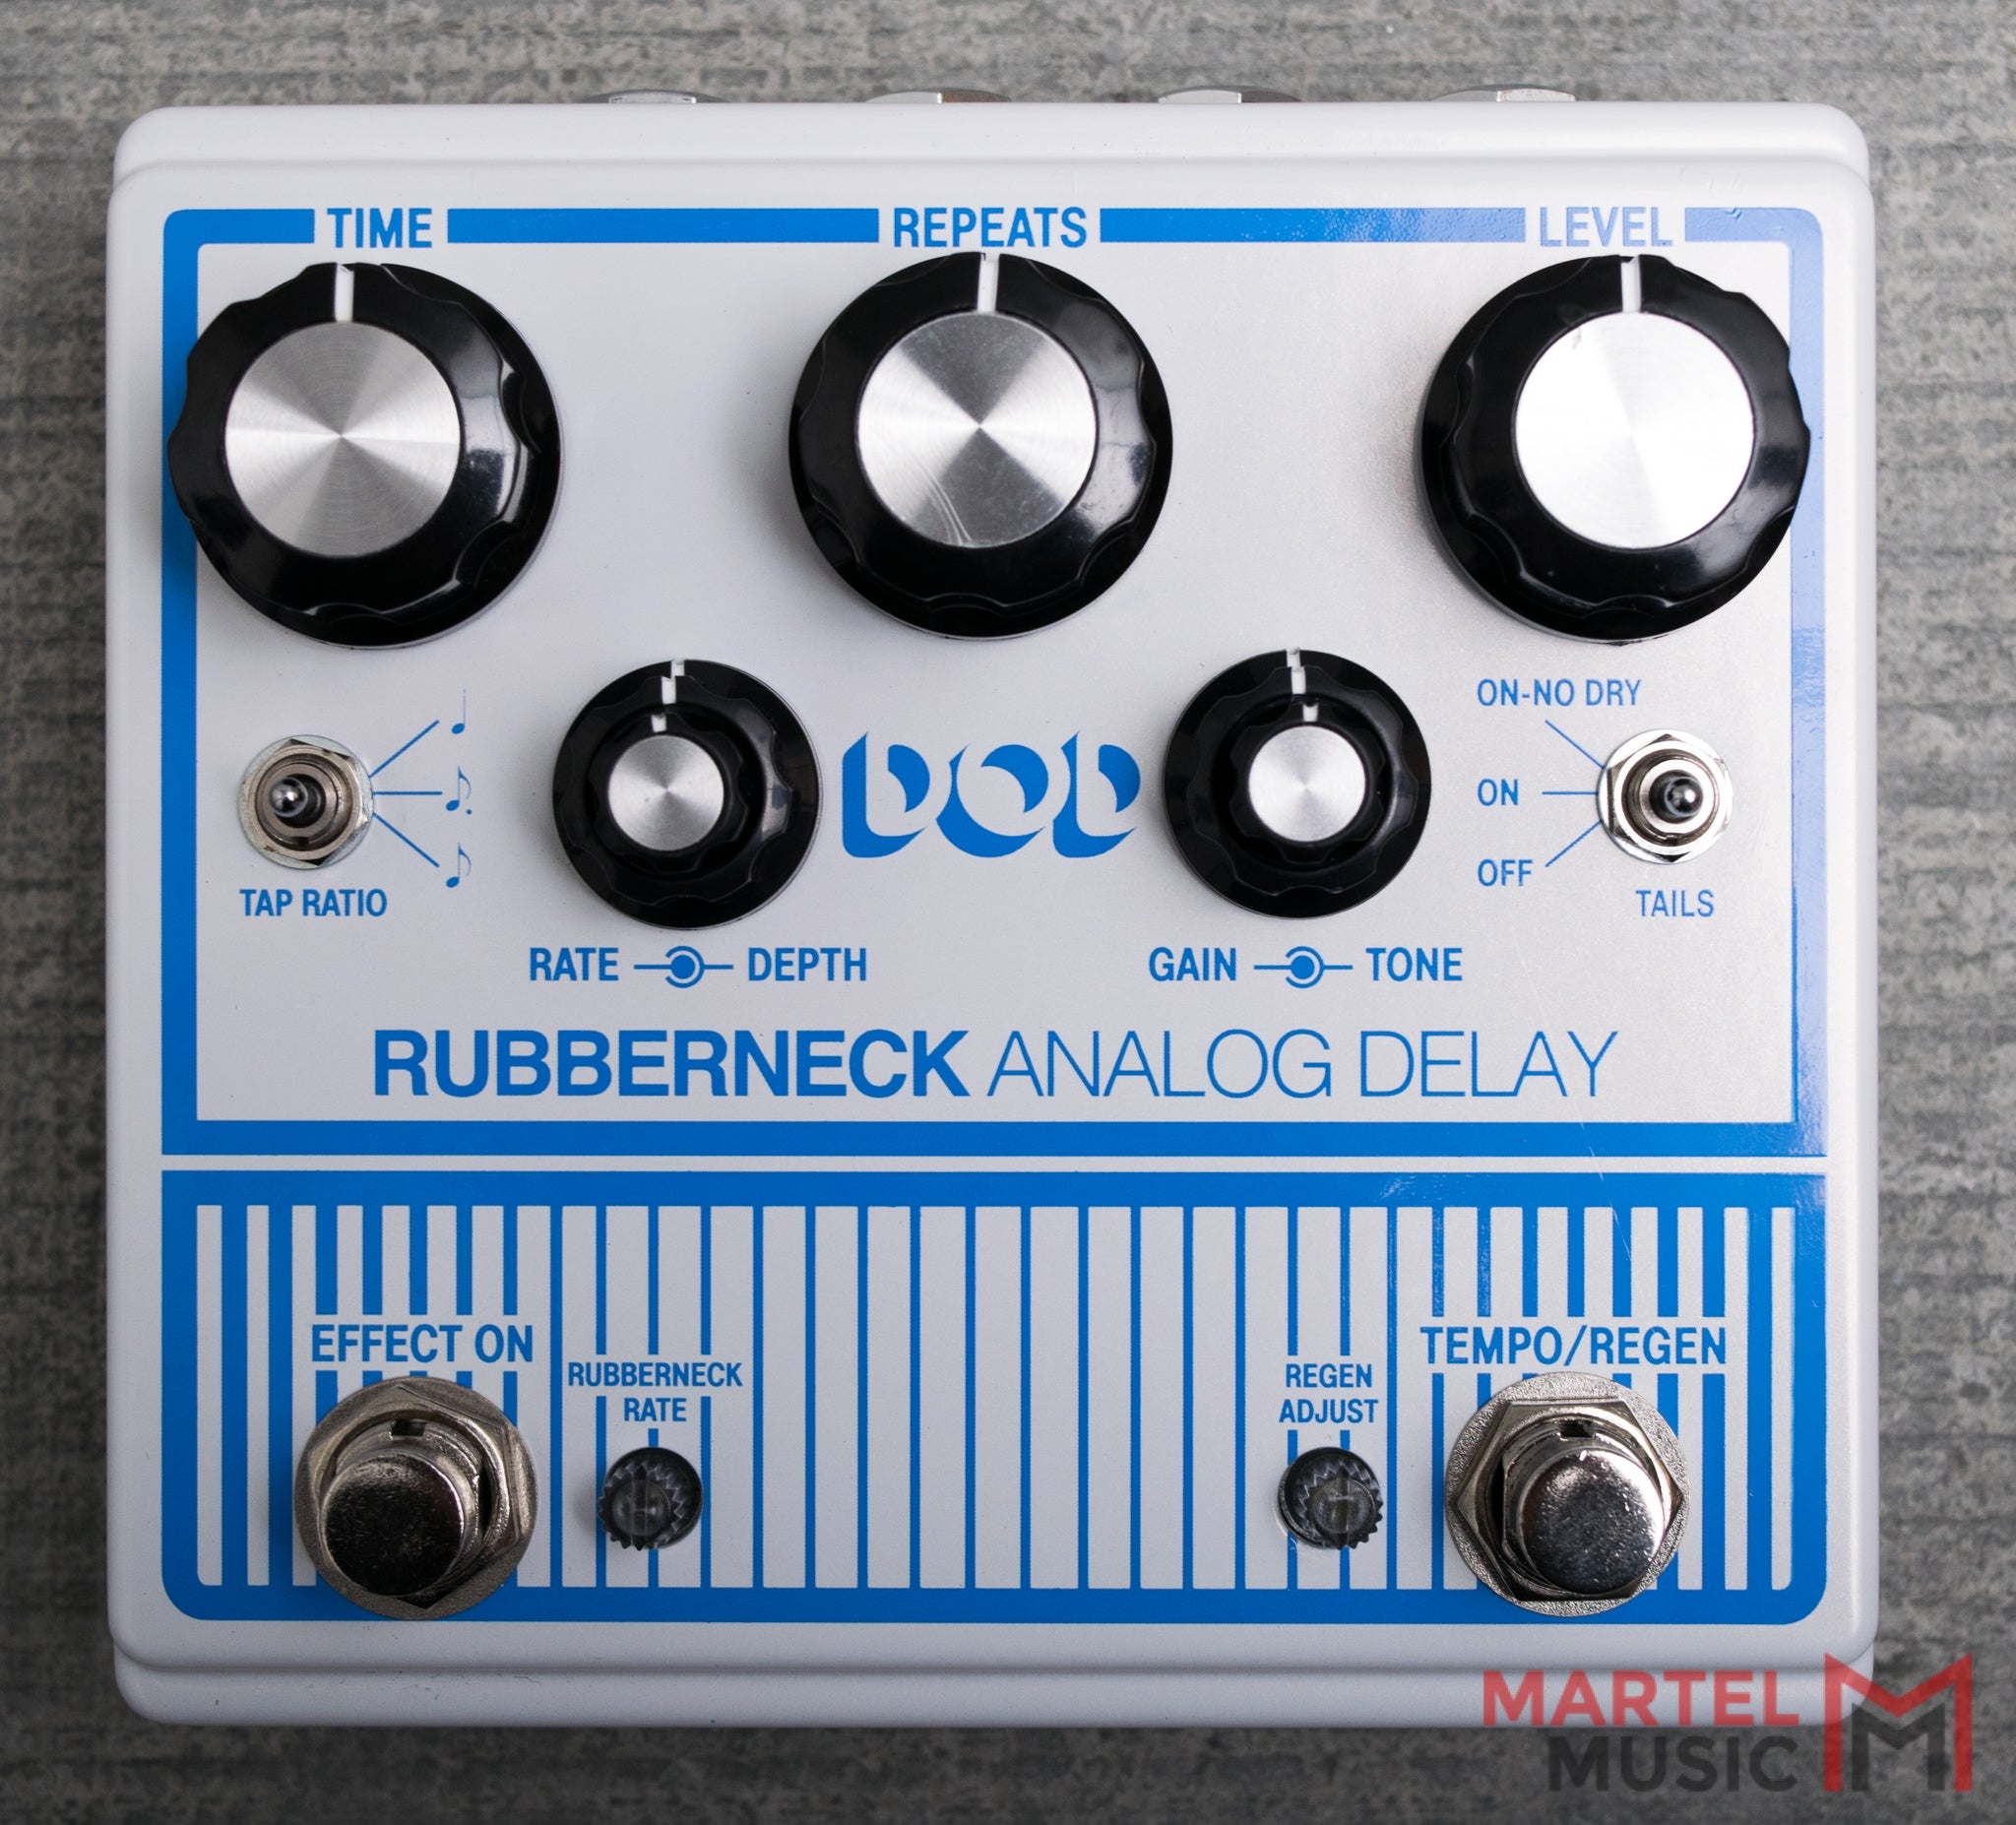 Best Seller Tagged Delay Martel Music Store Audio Gt Filters 1000 1 Tuning Voltage Controlled Filter Used Dod Rubberneck Analog